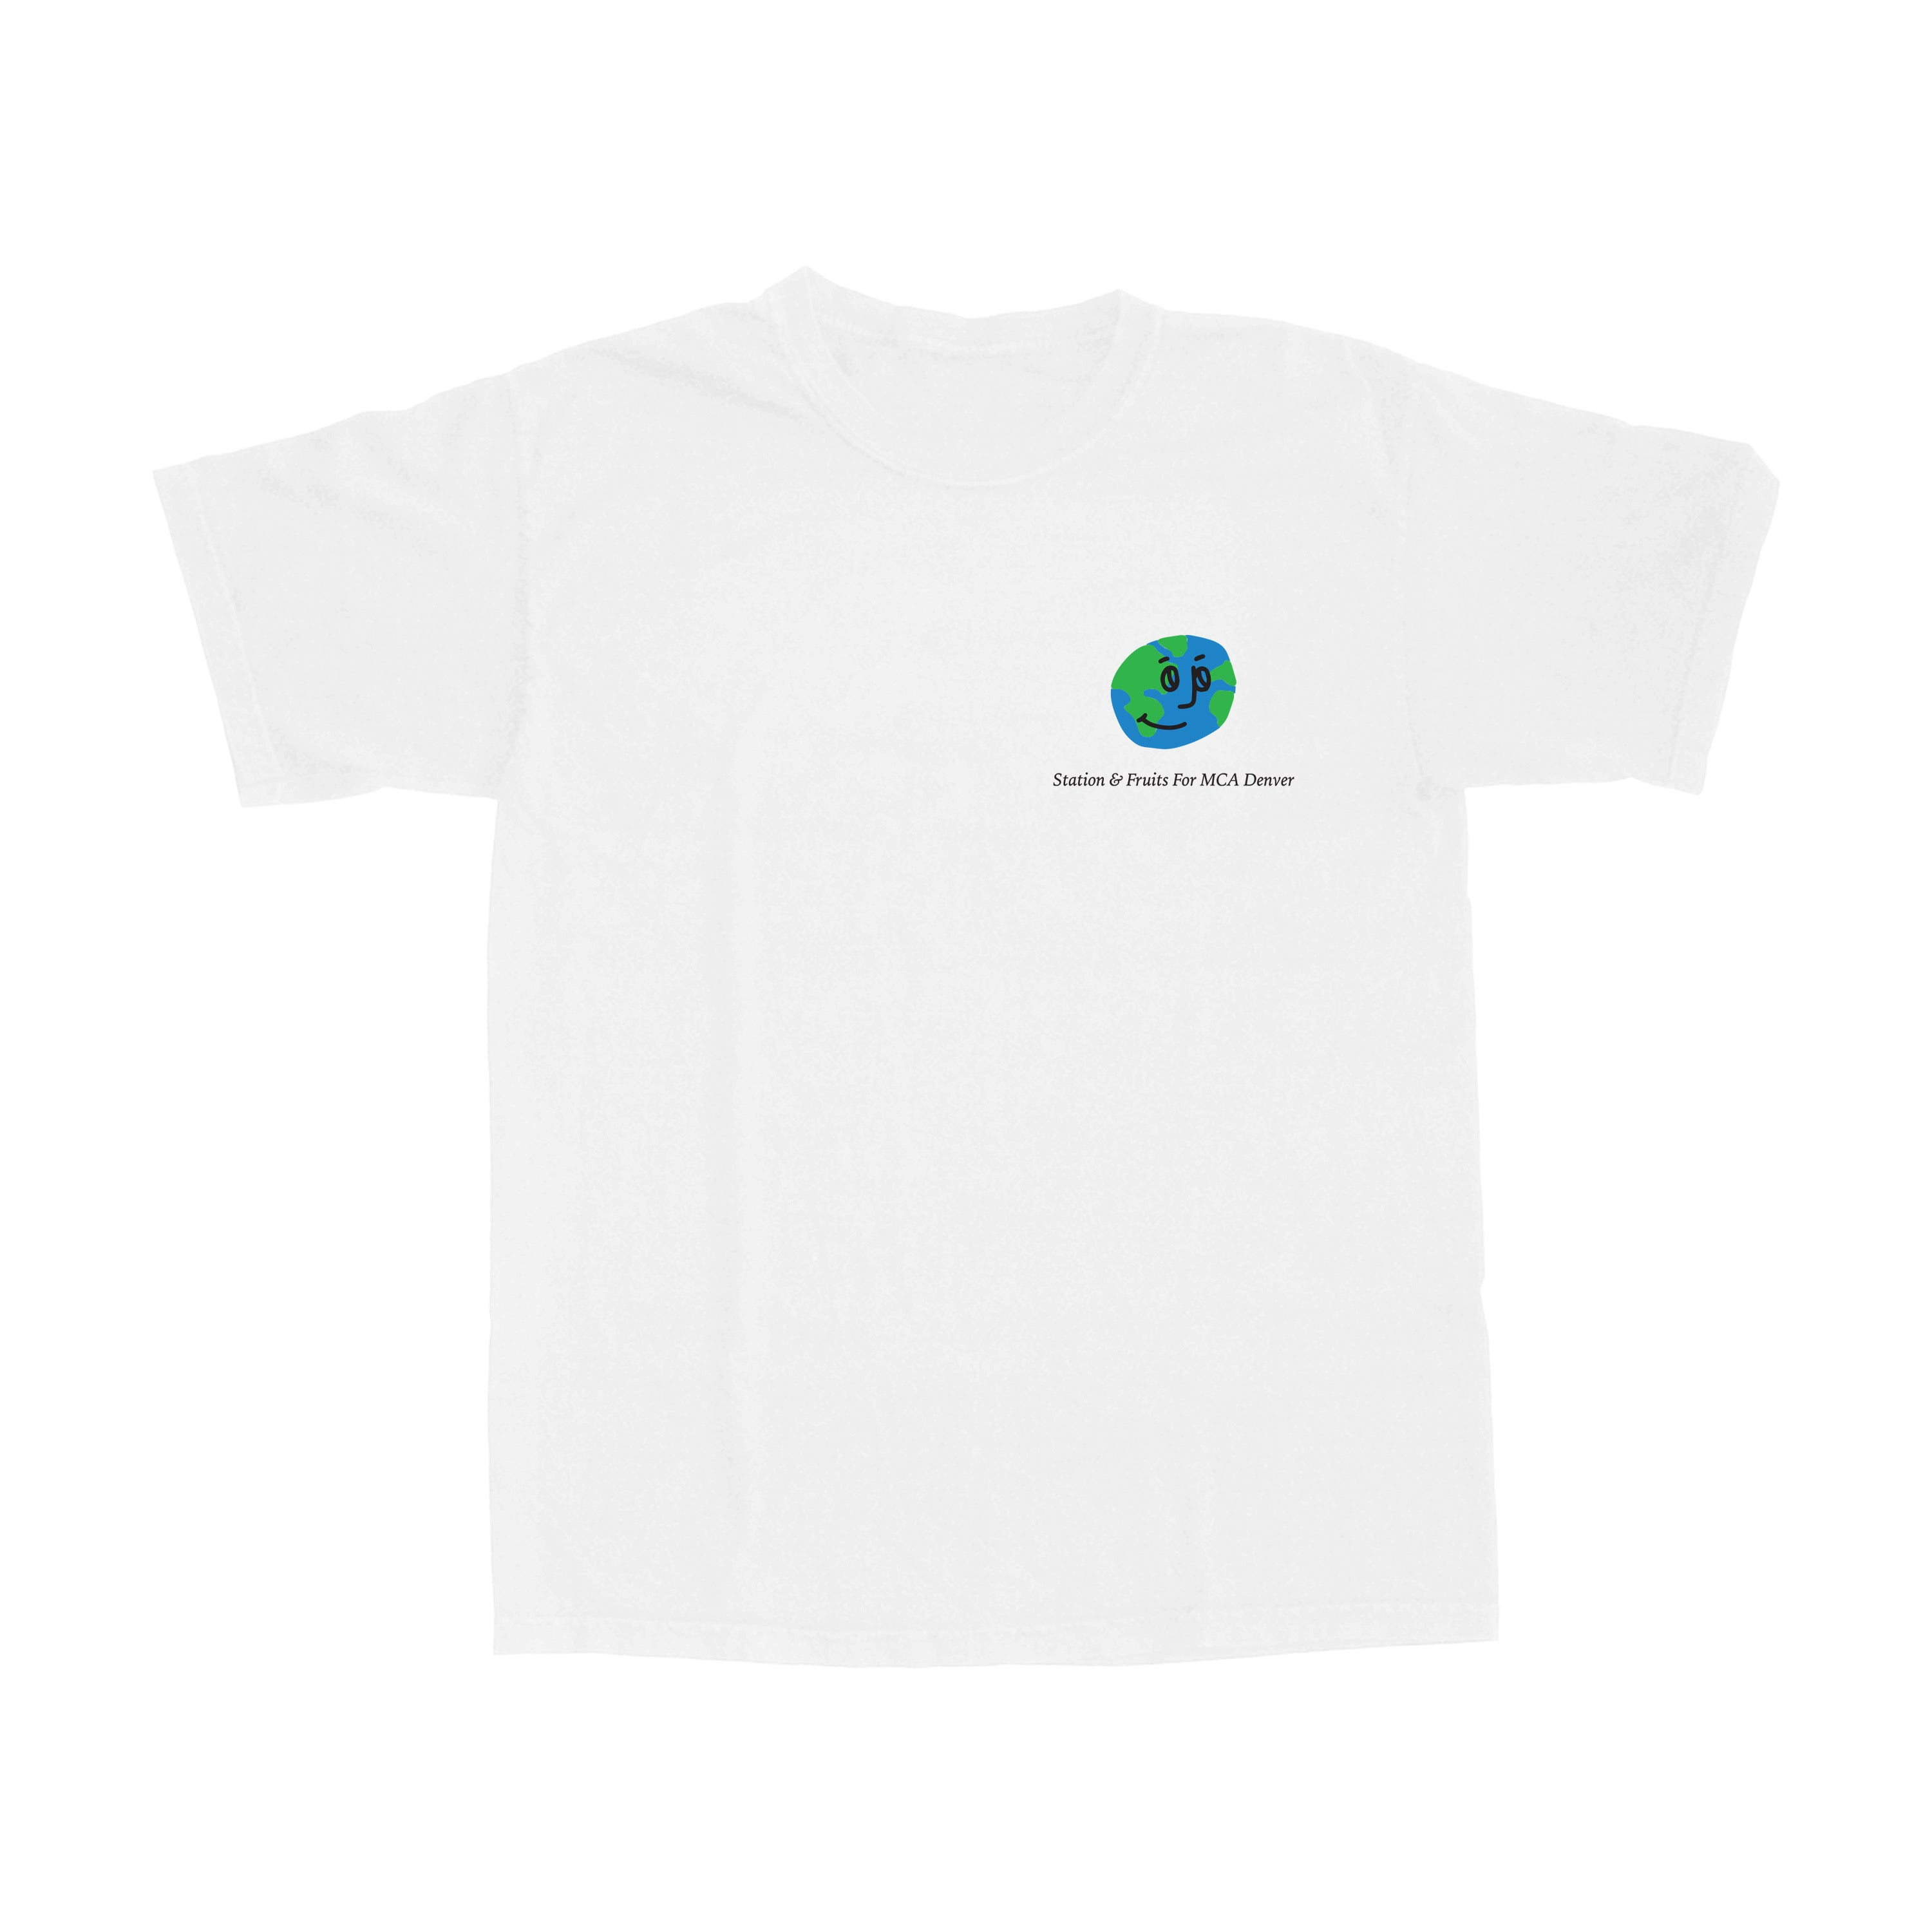 Station x Fruitsartclub 'MCA' Donation Tee